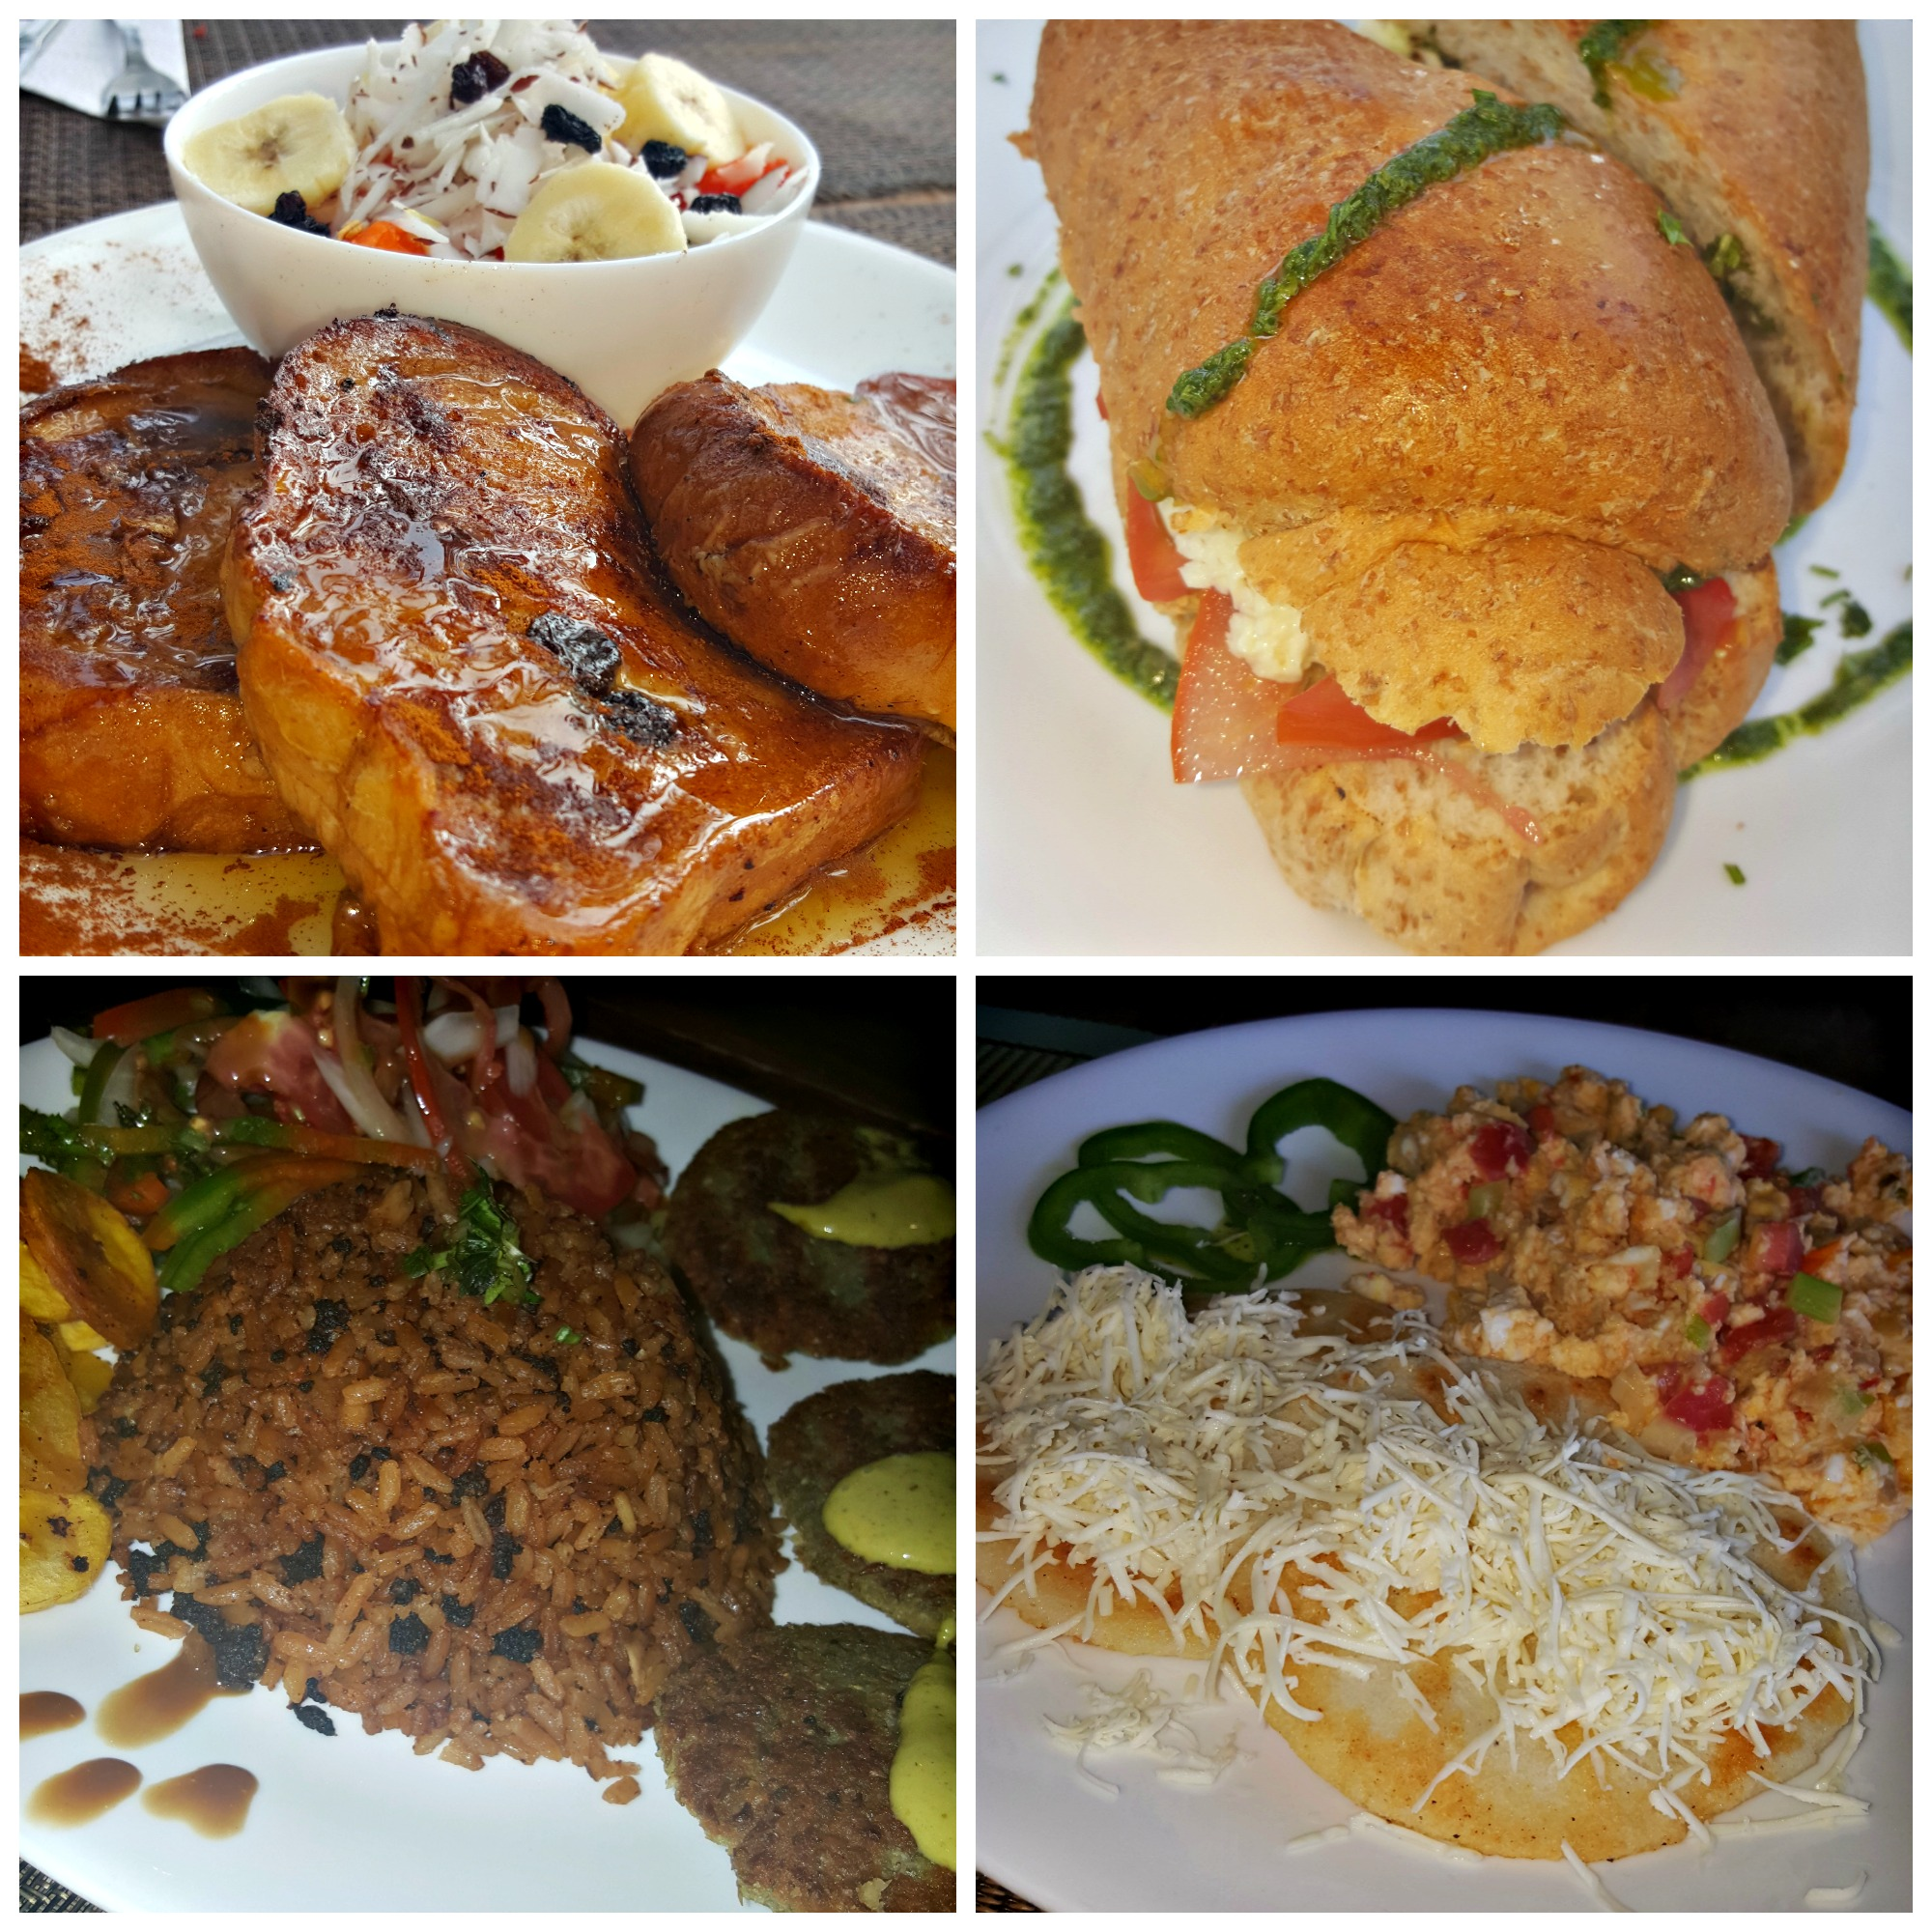 La Sirena Hotel Food Collage